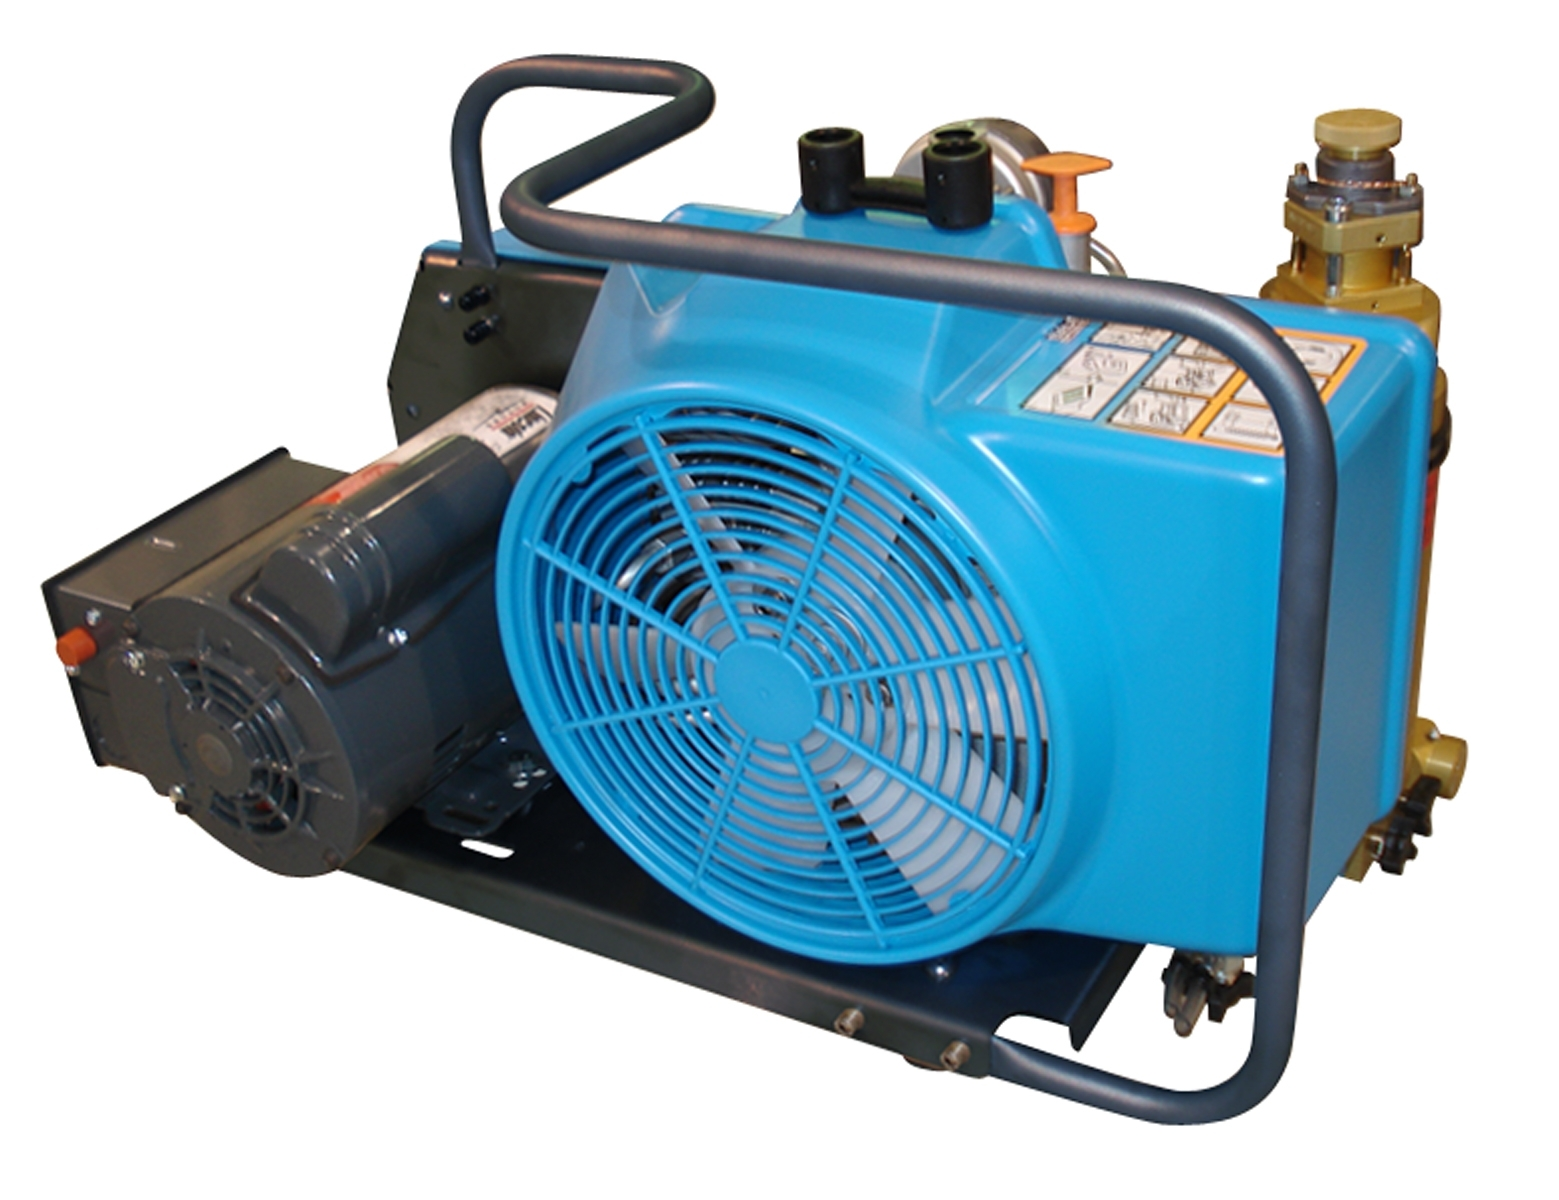 2 HP Single Phase 115v Personal Compressor